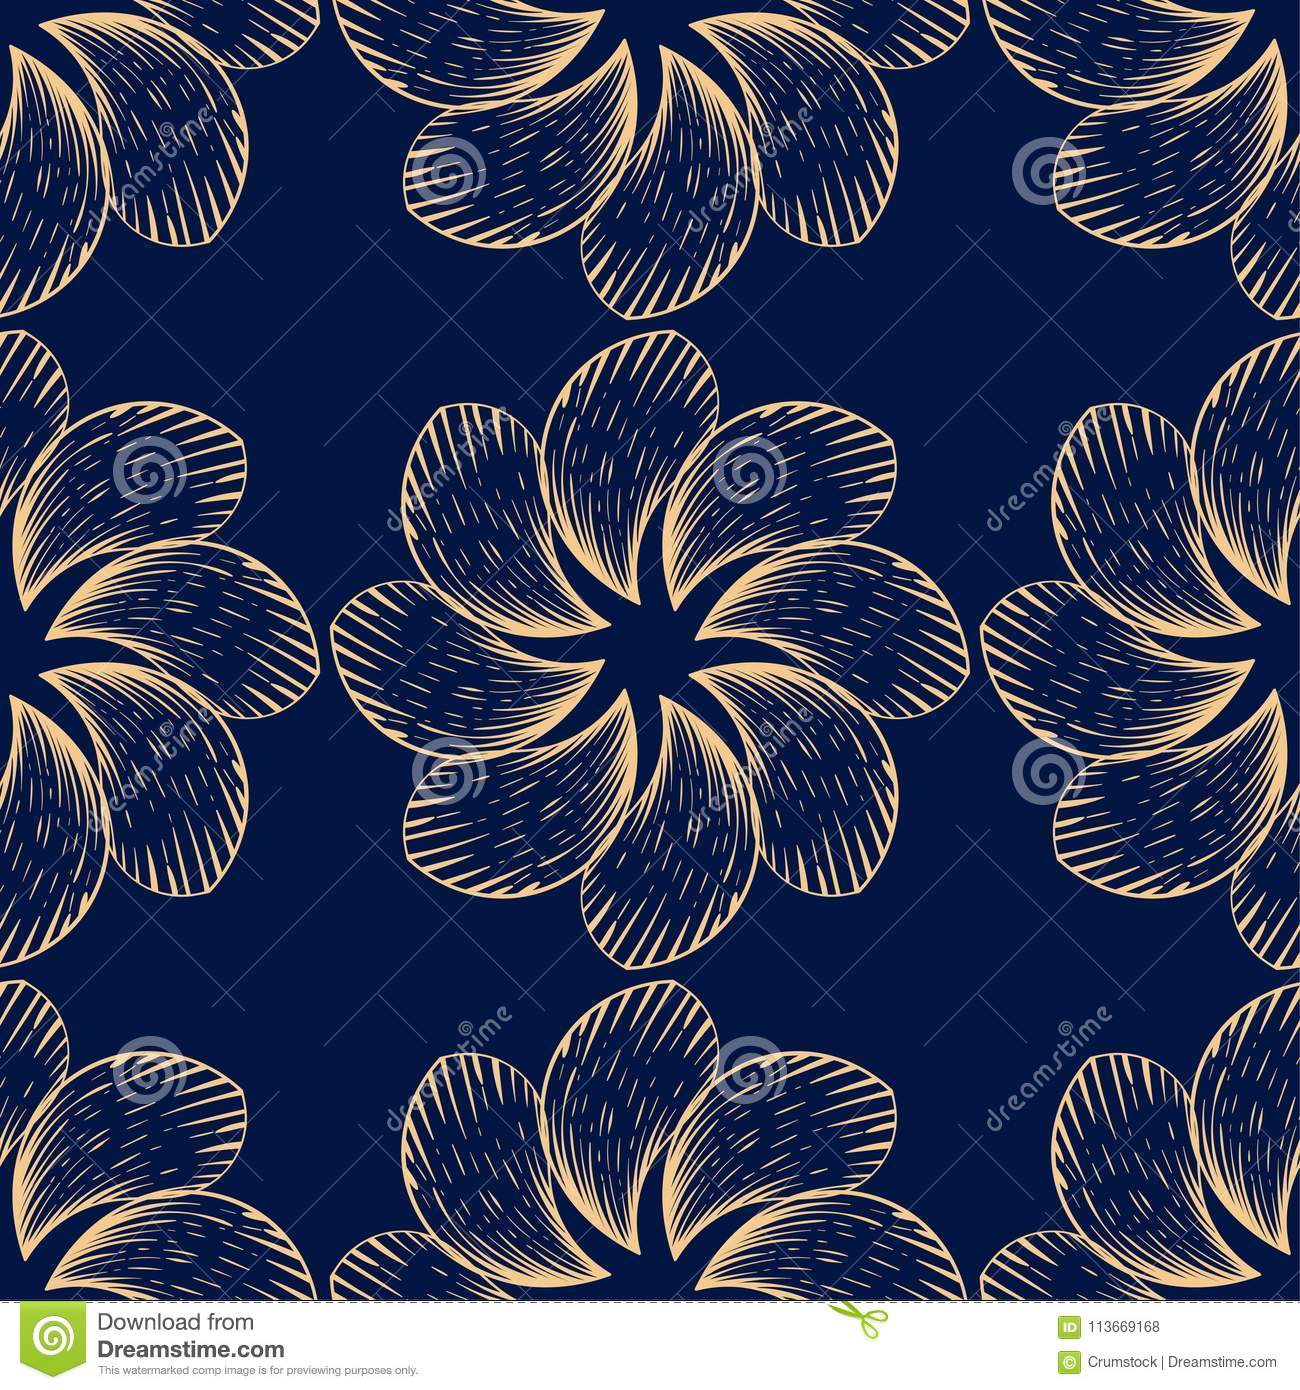 Golden floral seamless pattern on blue background